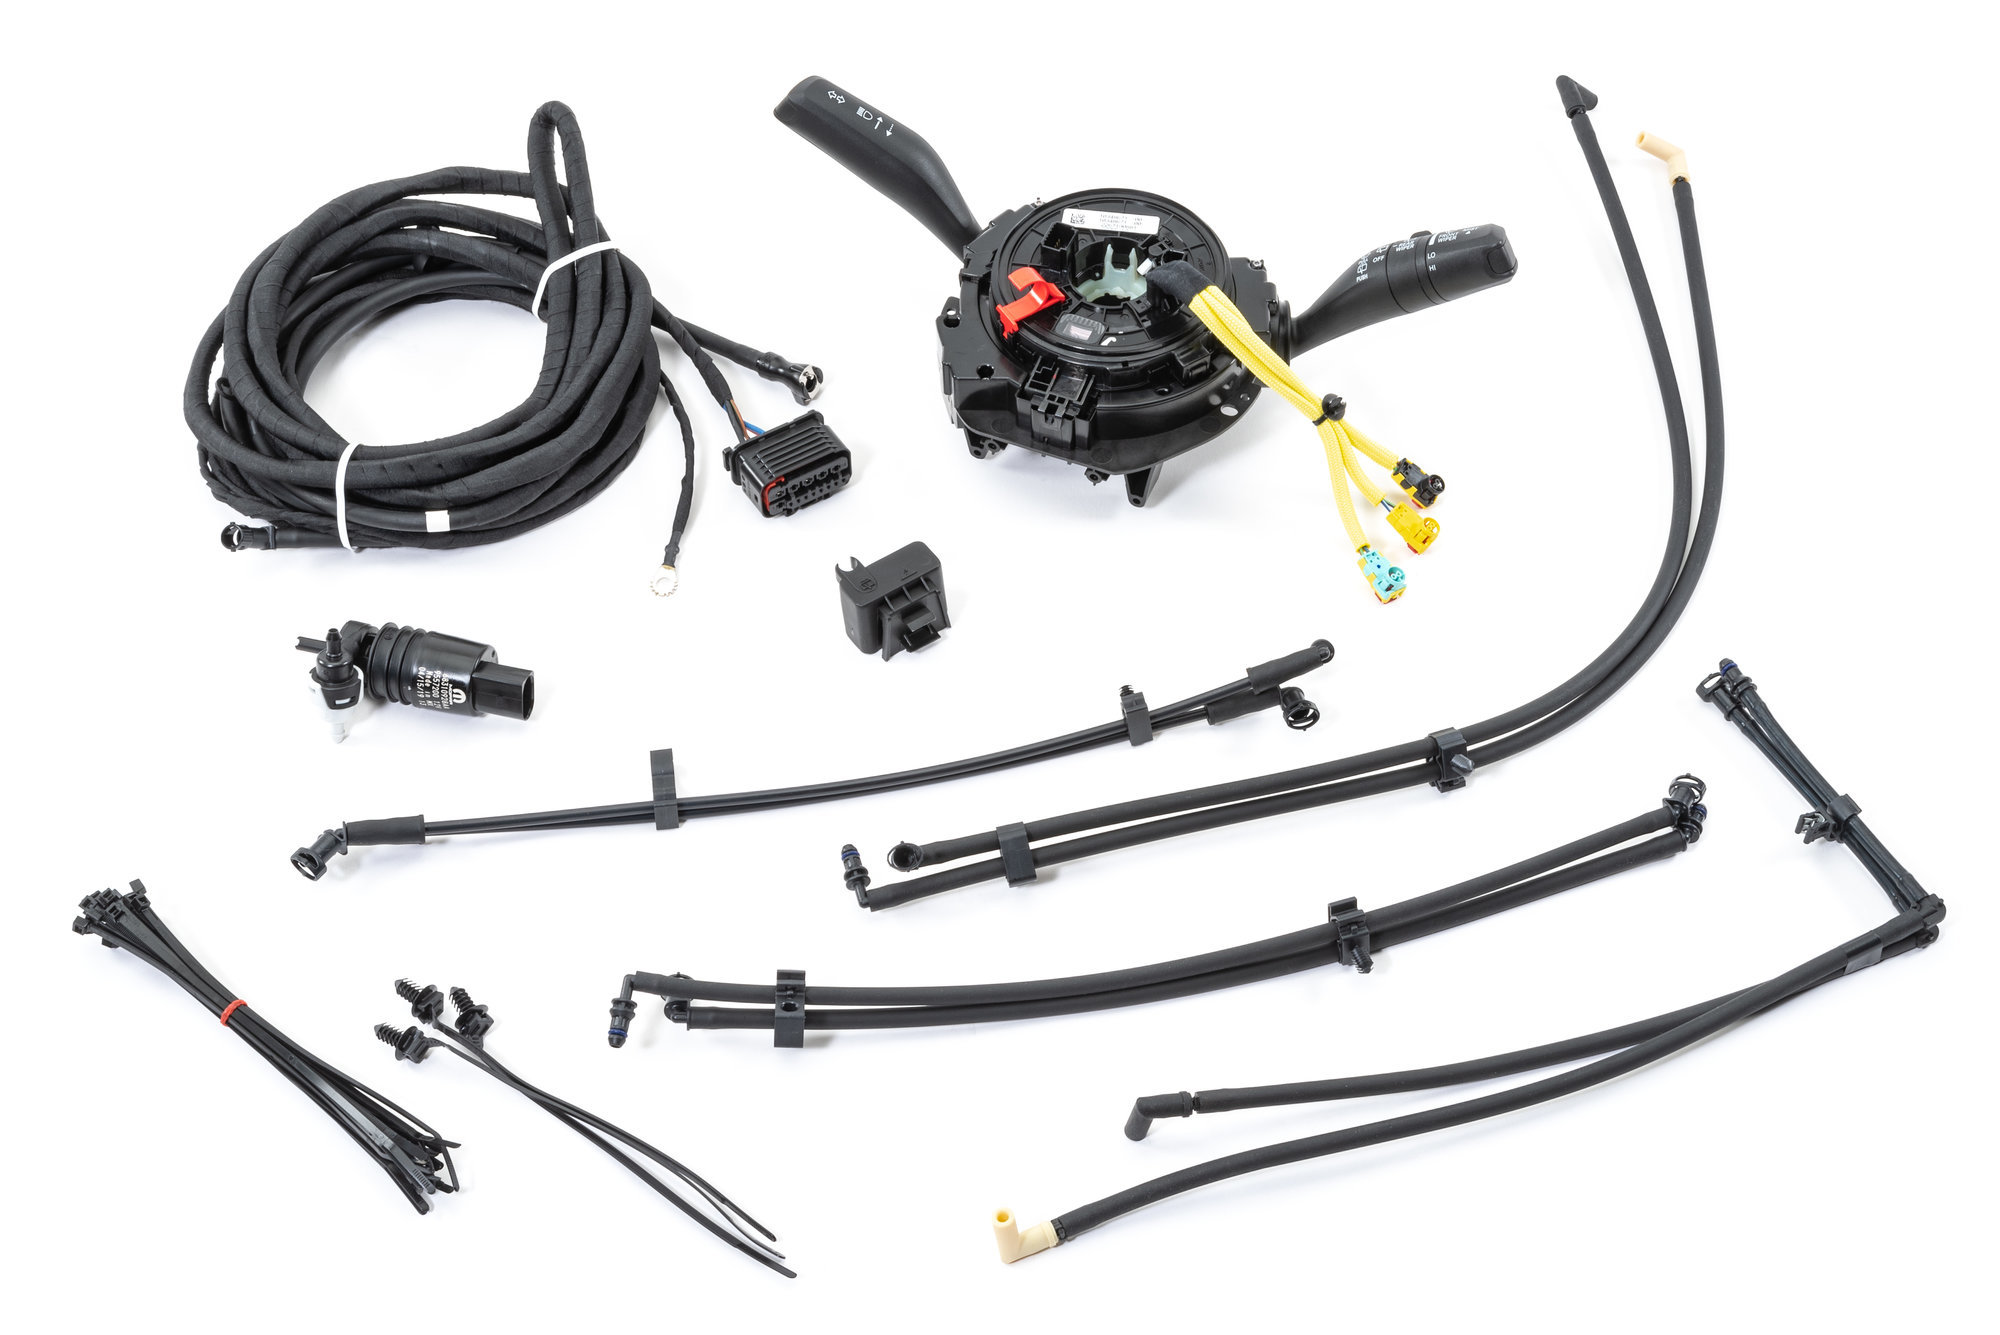 Mopar Hardtop Wiring Harness Conversion Kit for 18-21 Jeep